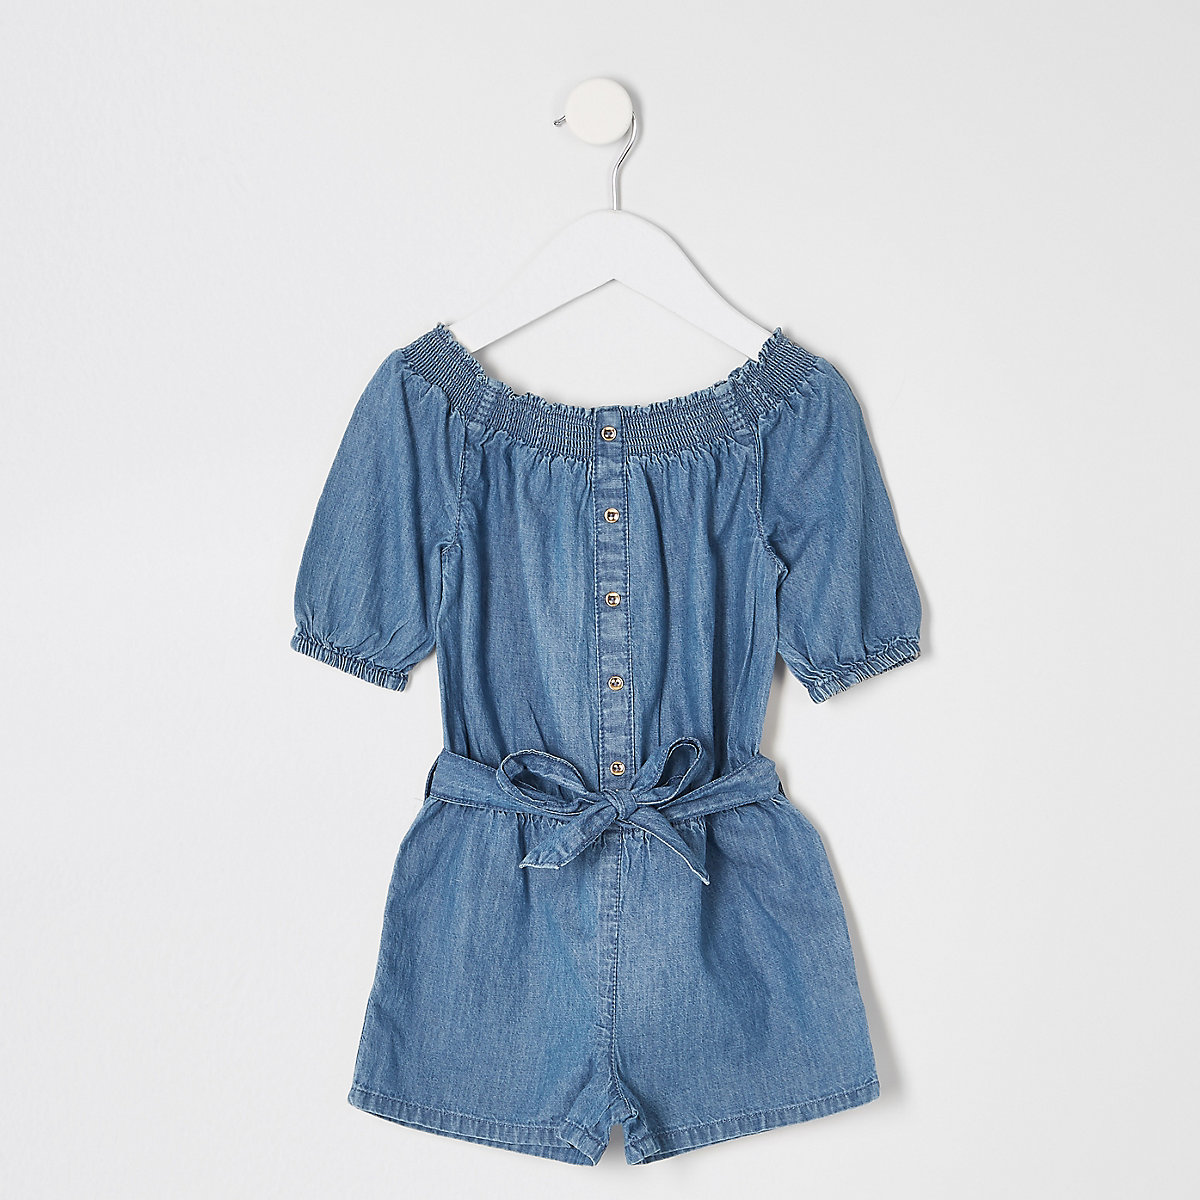 4abfc7f56d3 Mini girls blue bardot denim playsuit - Baby Girls Playsuits   Jumpsuits -  Mini Girls - girls